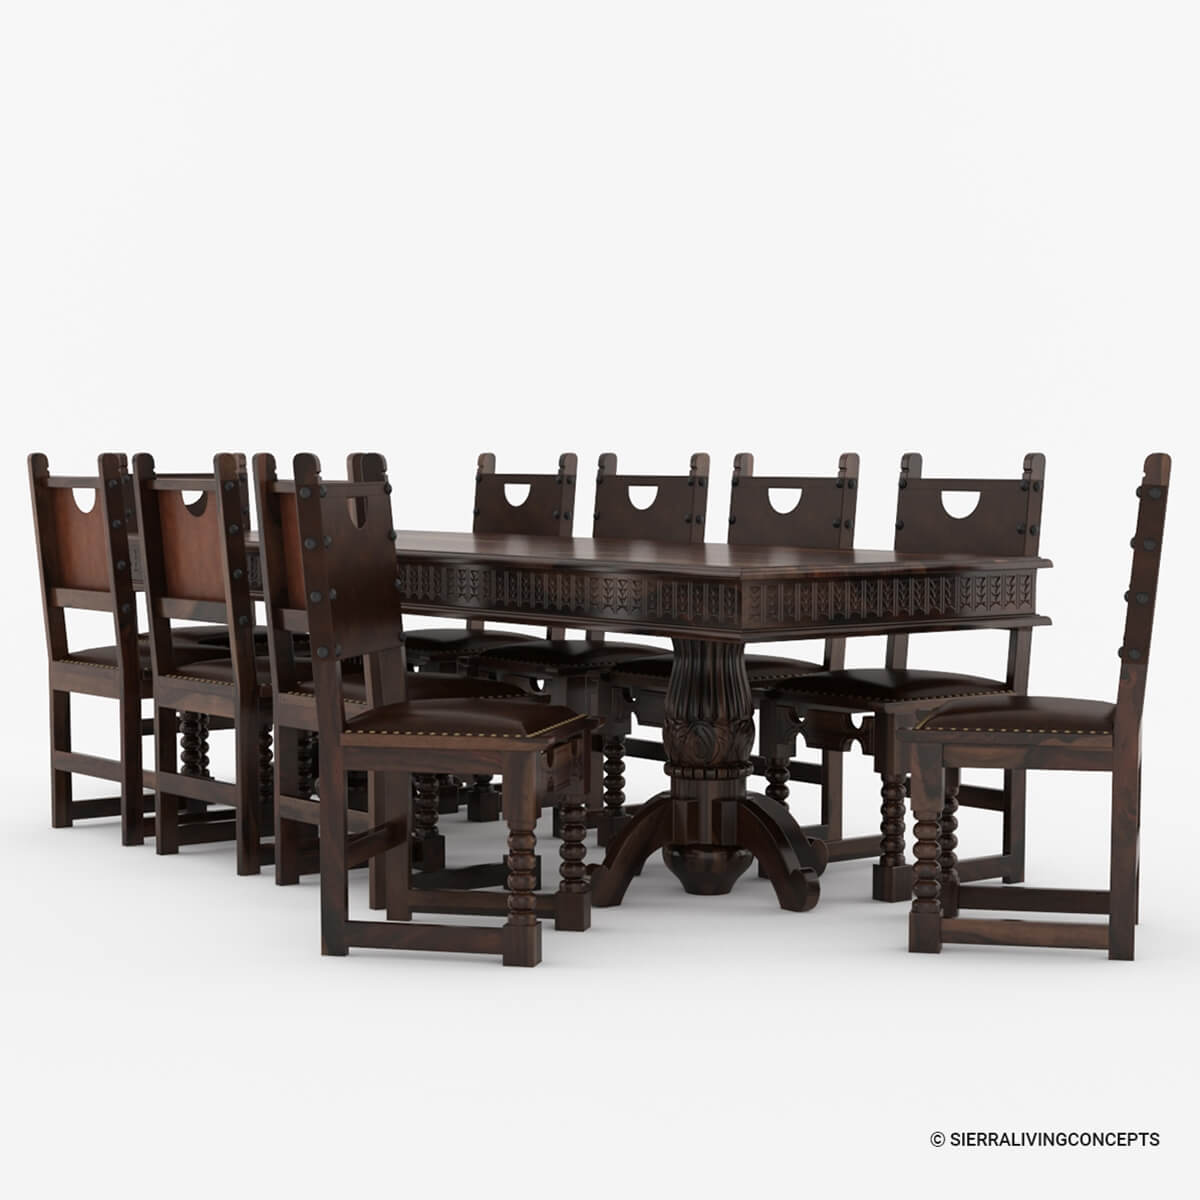 Rustic Wooden Dining Room Table ~ Nottingham solid wood large rustic dining room table chair set